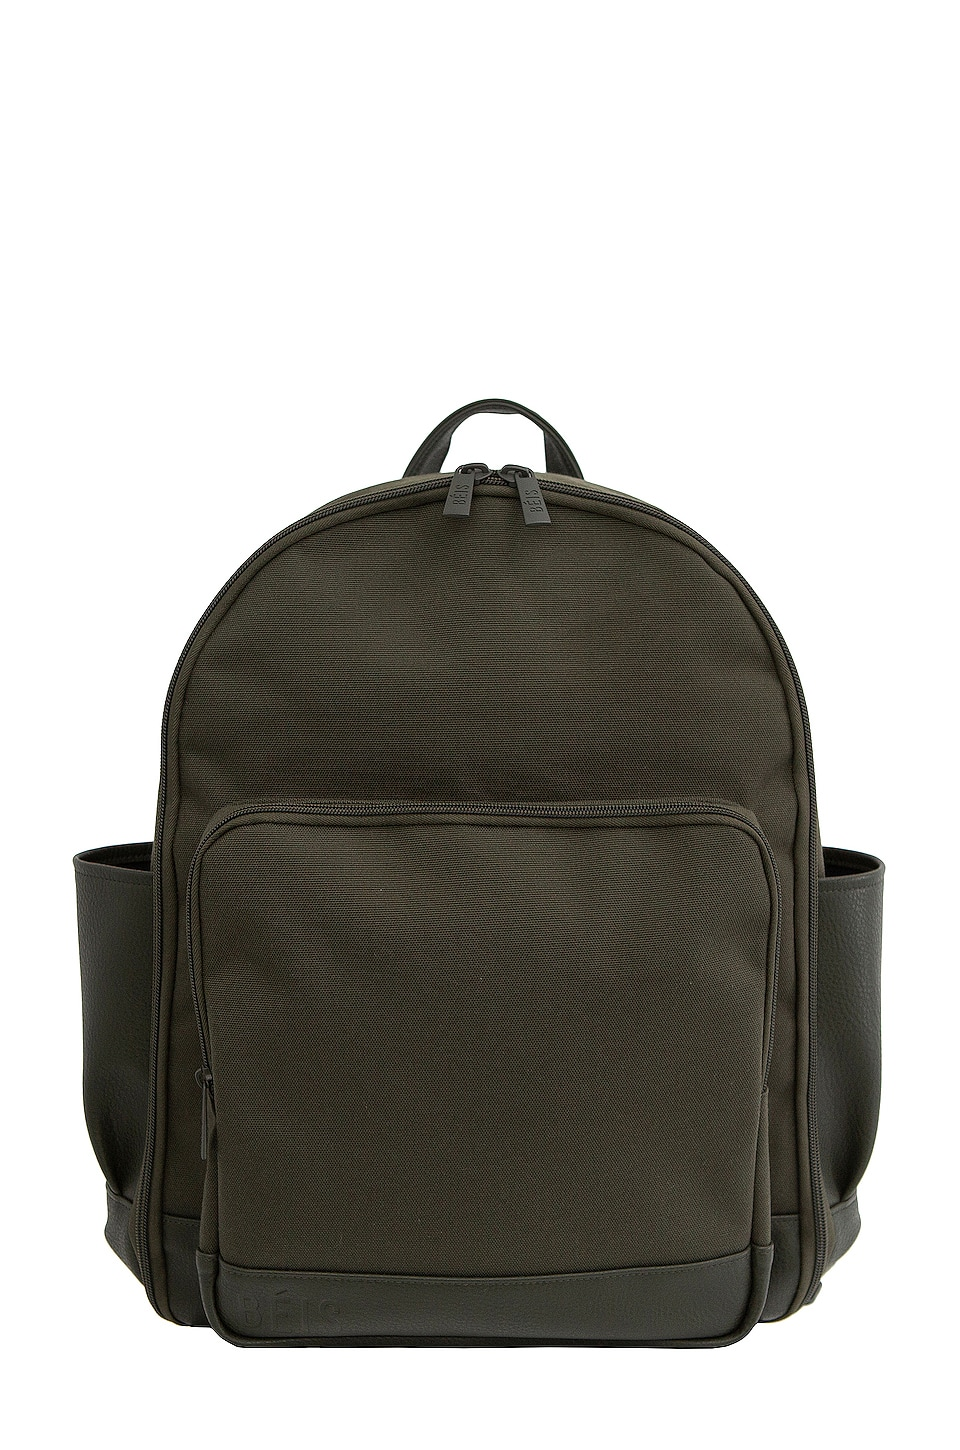 BEIS Backpack in Green